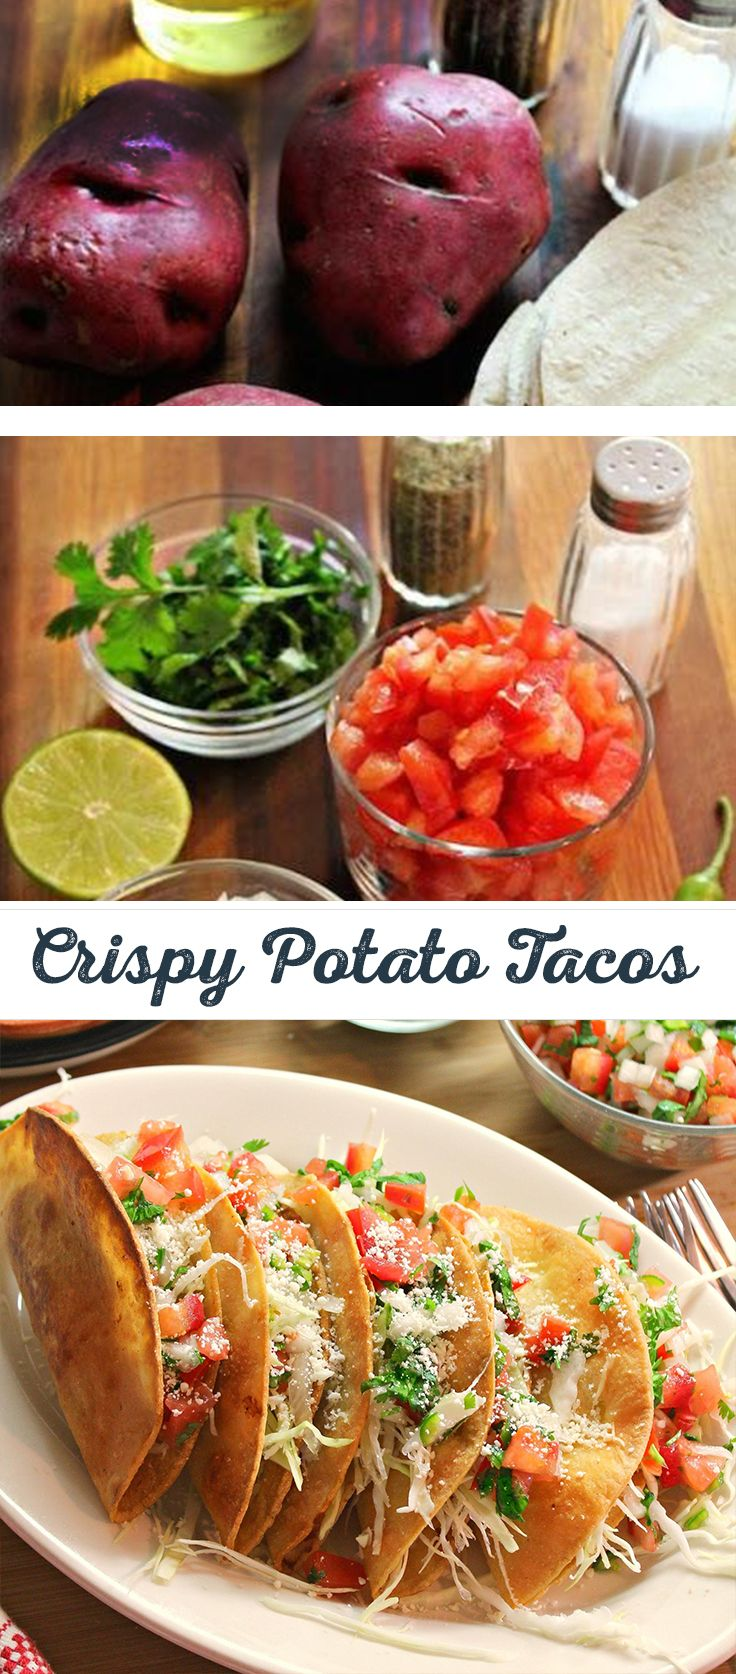 """Make your next taco night """"muy bueno"""" with this creative Vegetarian Crispy Potato Tacos recipe. Colorado ain't done yet, add some hatch green chilies to that mini mountain of crispy potatoes."""